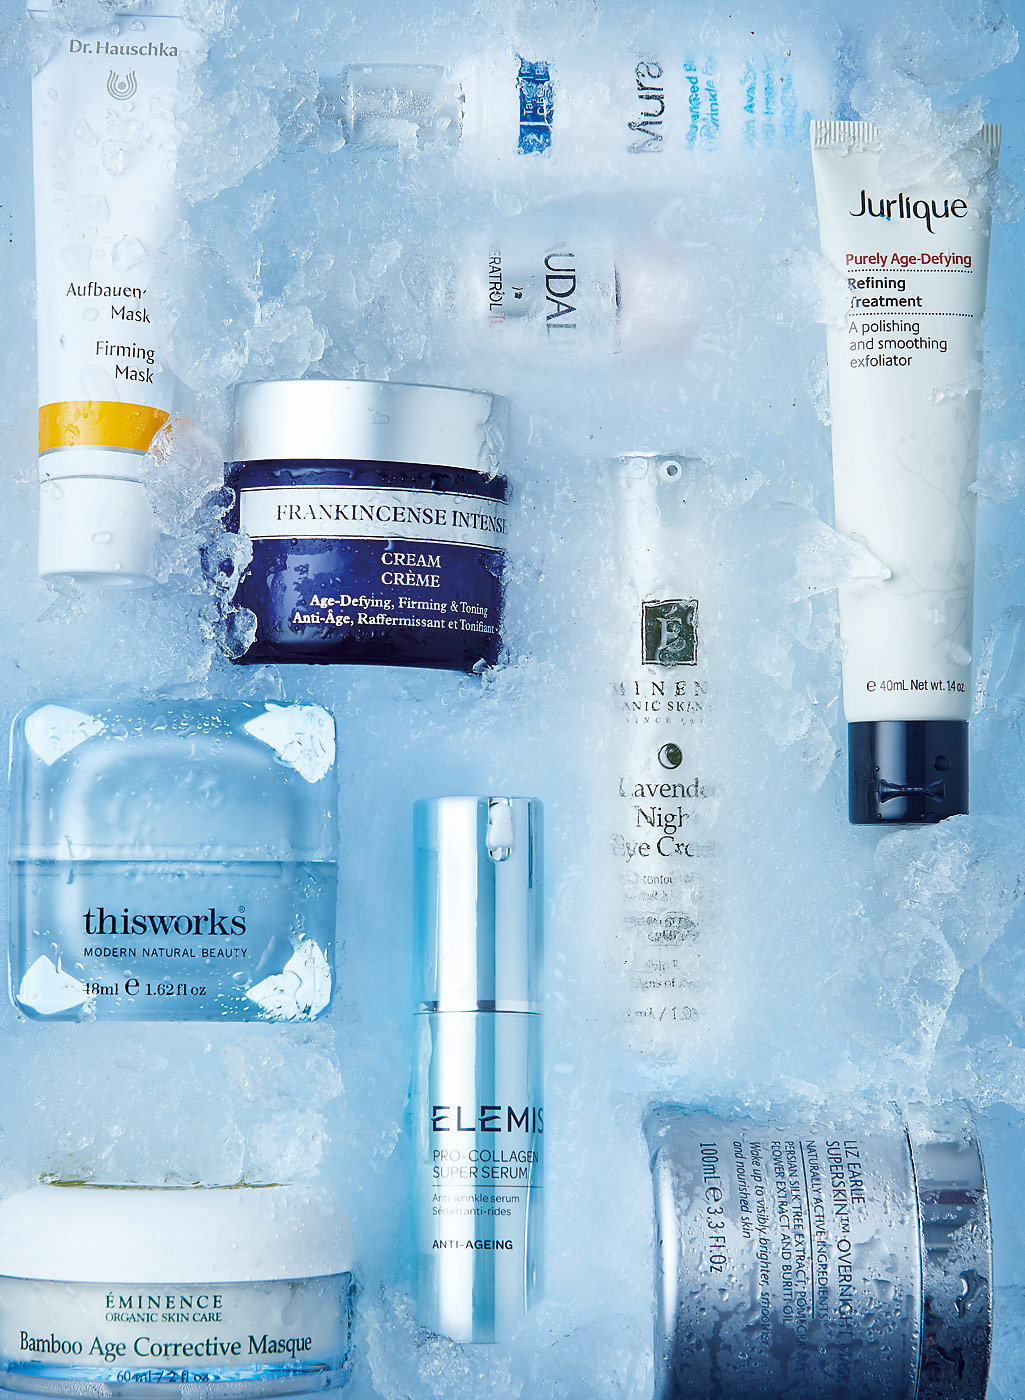 Age defying beauty products in ice